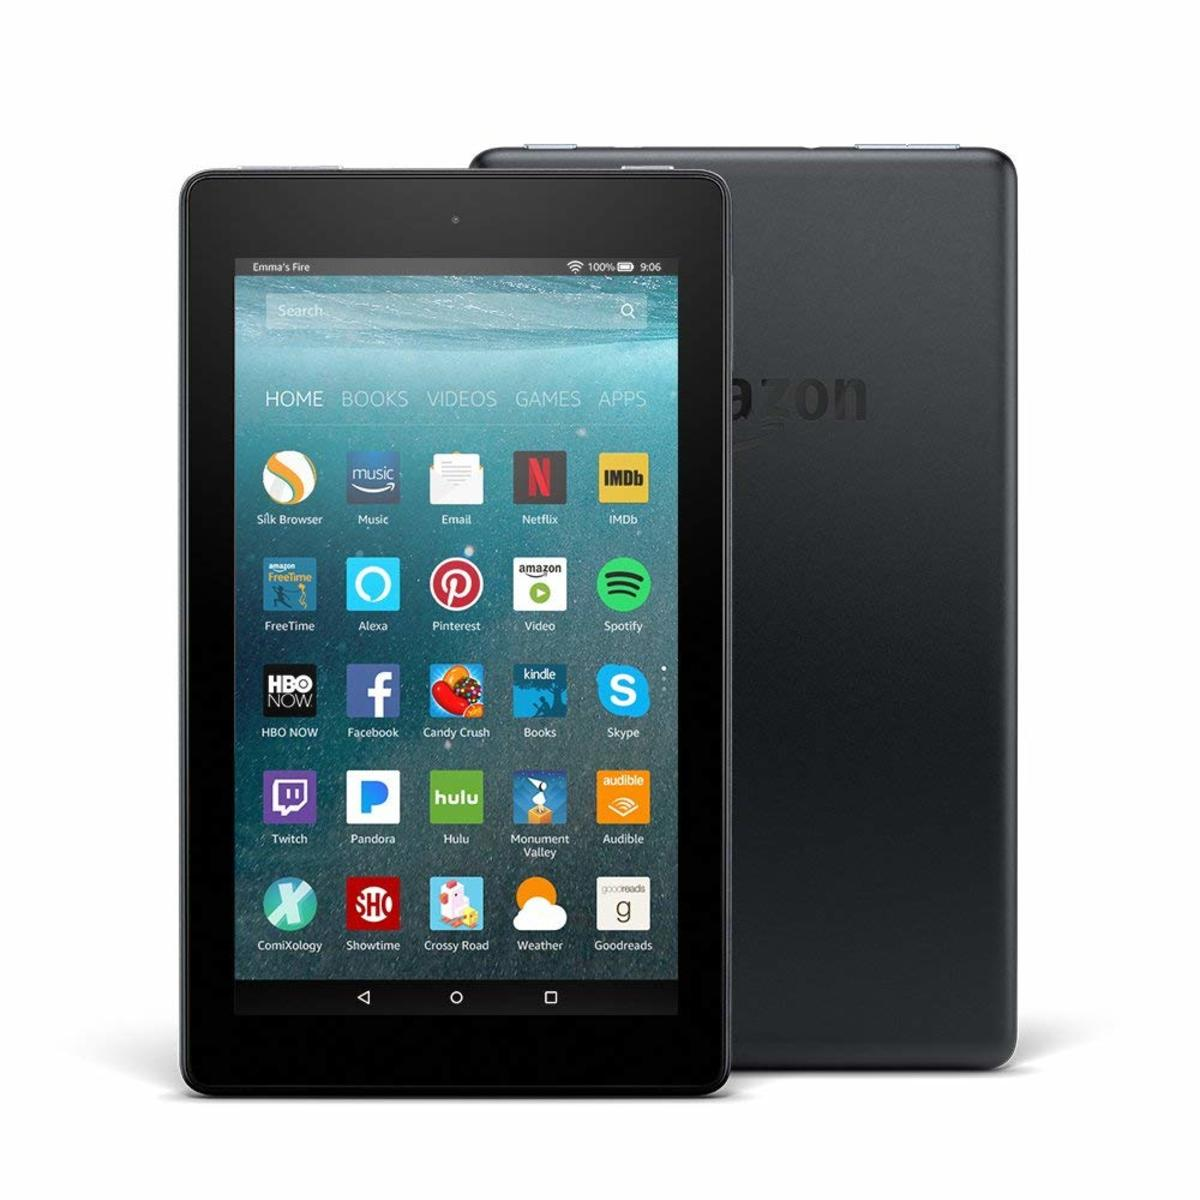 This particular Kindle Fire is $49.99. Though that can appear to be costly, they do offer monthly payments and it can be a great investment if you have a desire to read a lot of books but have no place to store said books.